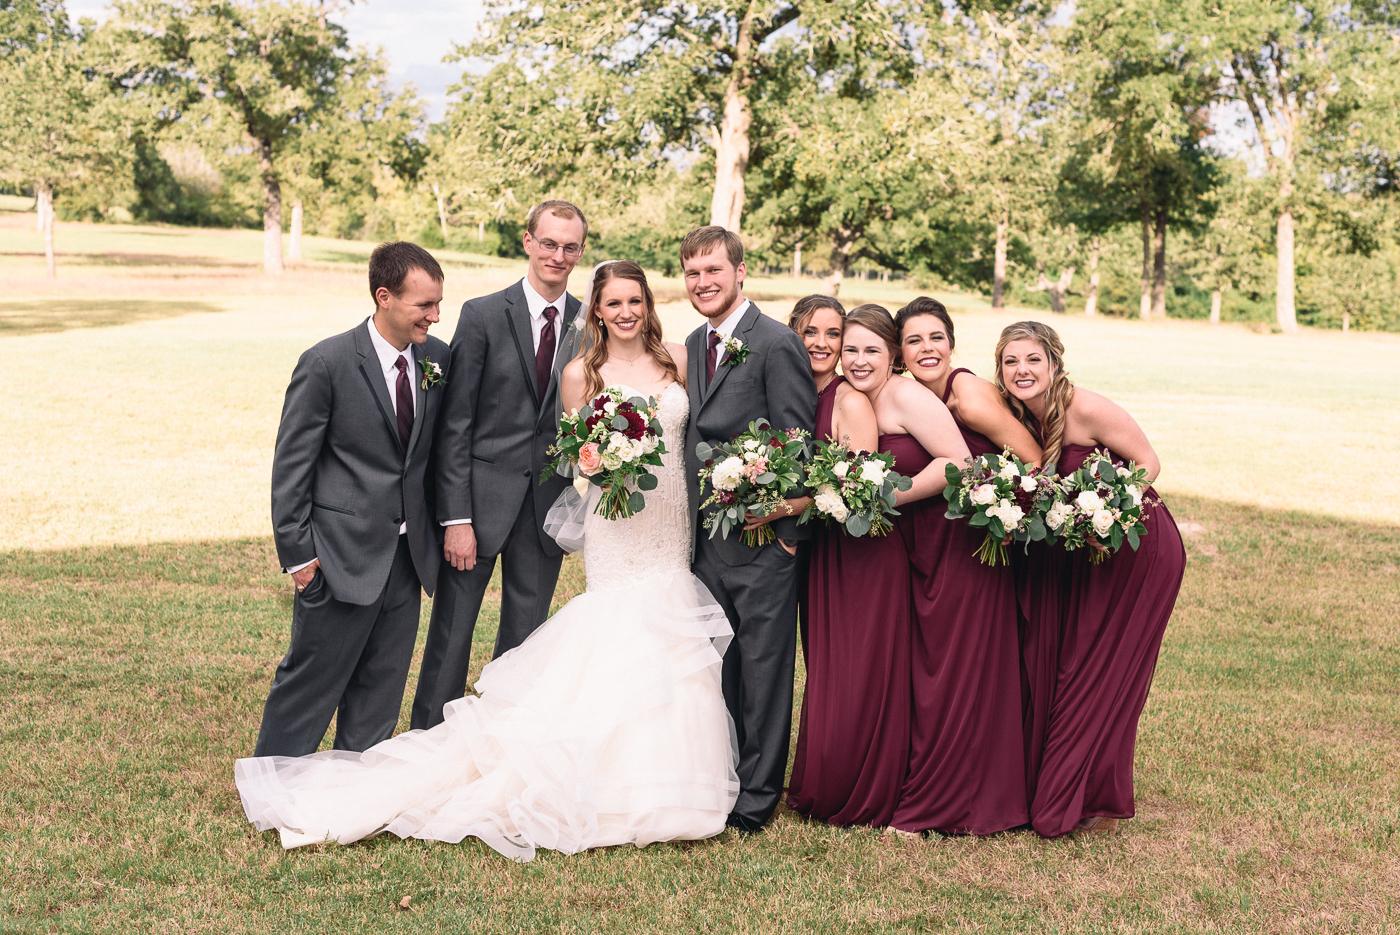 wedding party wedding portrait bridesmaids groomsmen broken arrow ranch college station